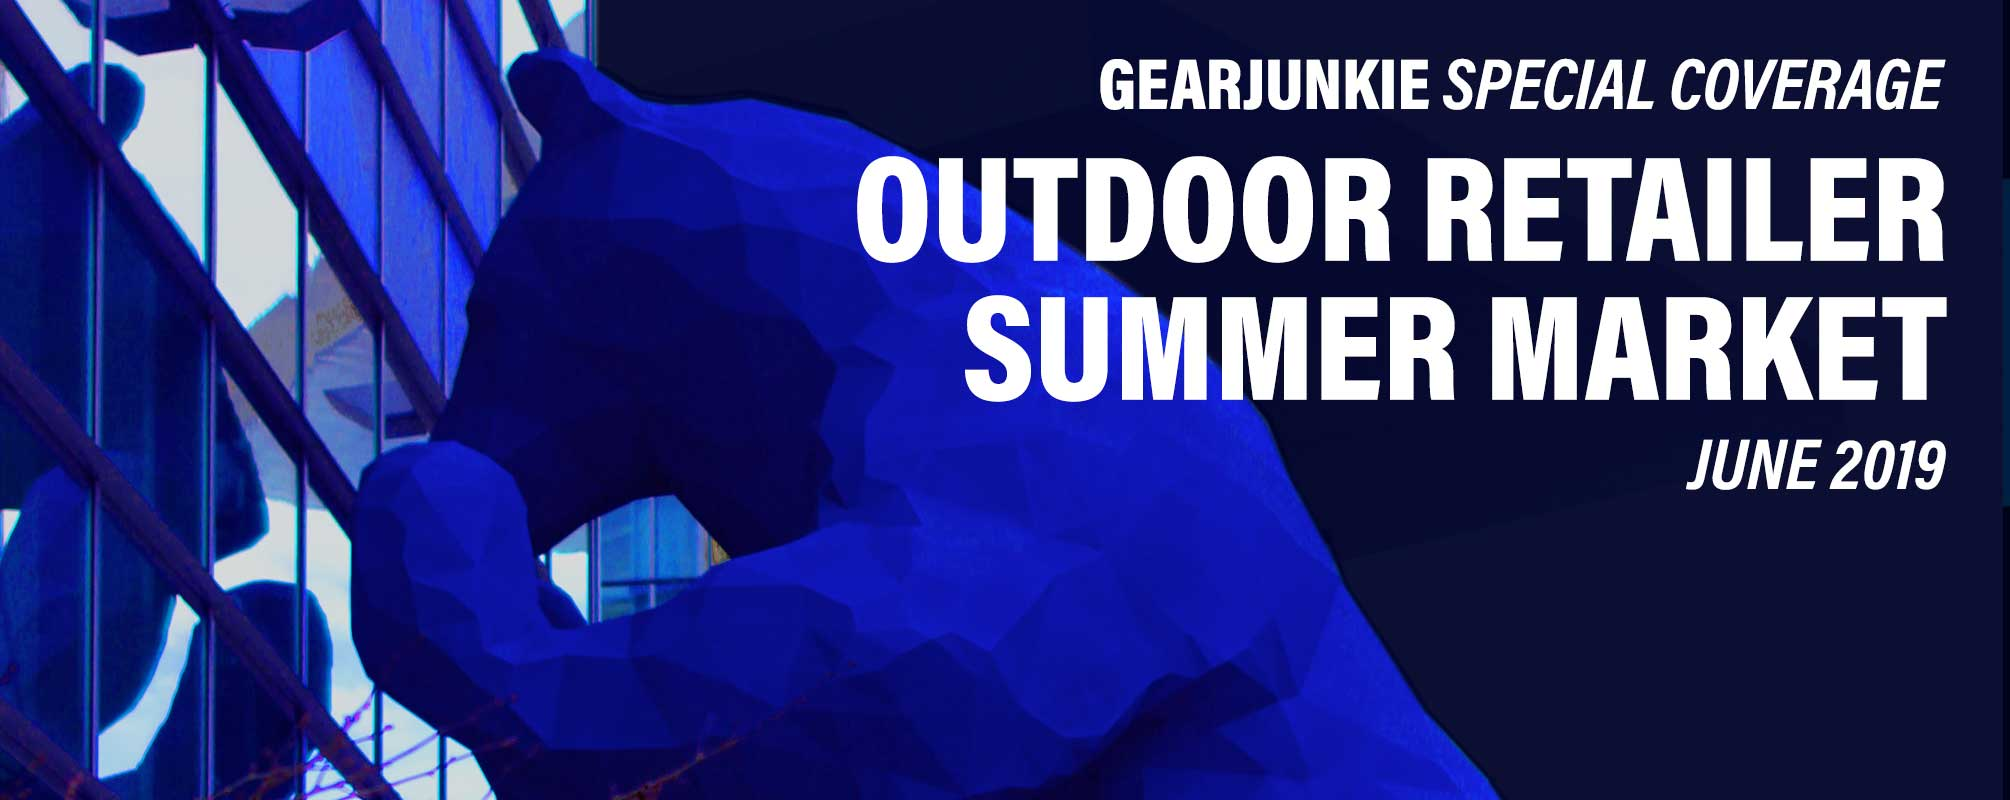 07f411ab57 Outdoor Retailer (Topic) | GearJunkie